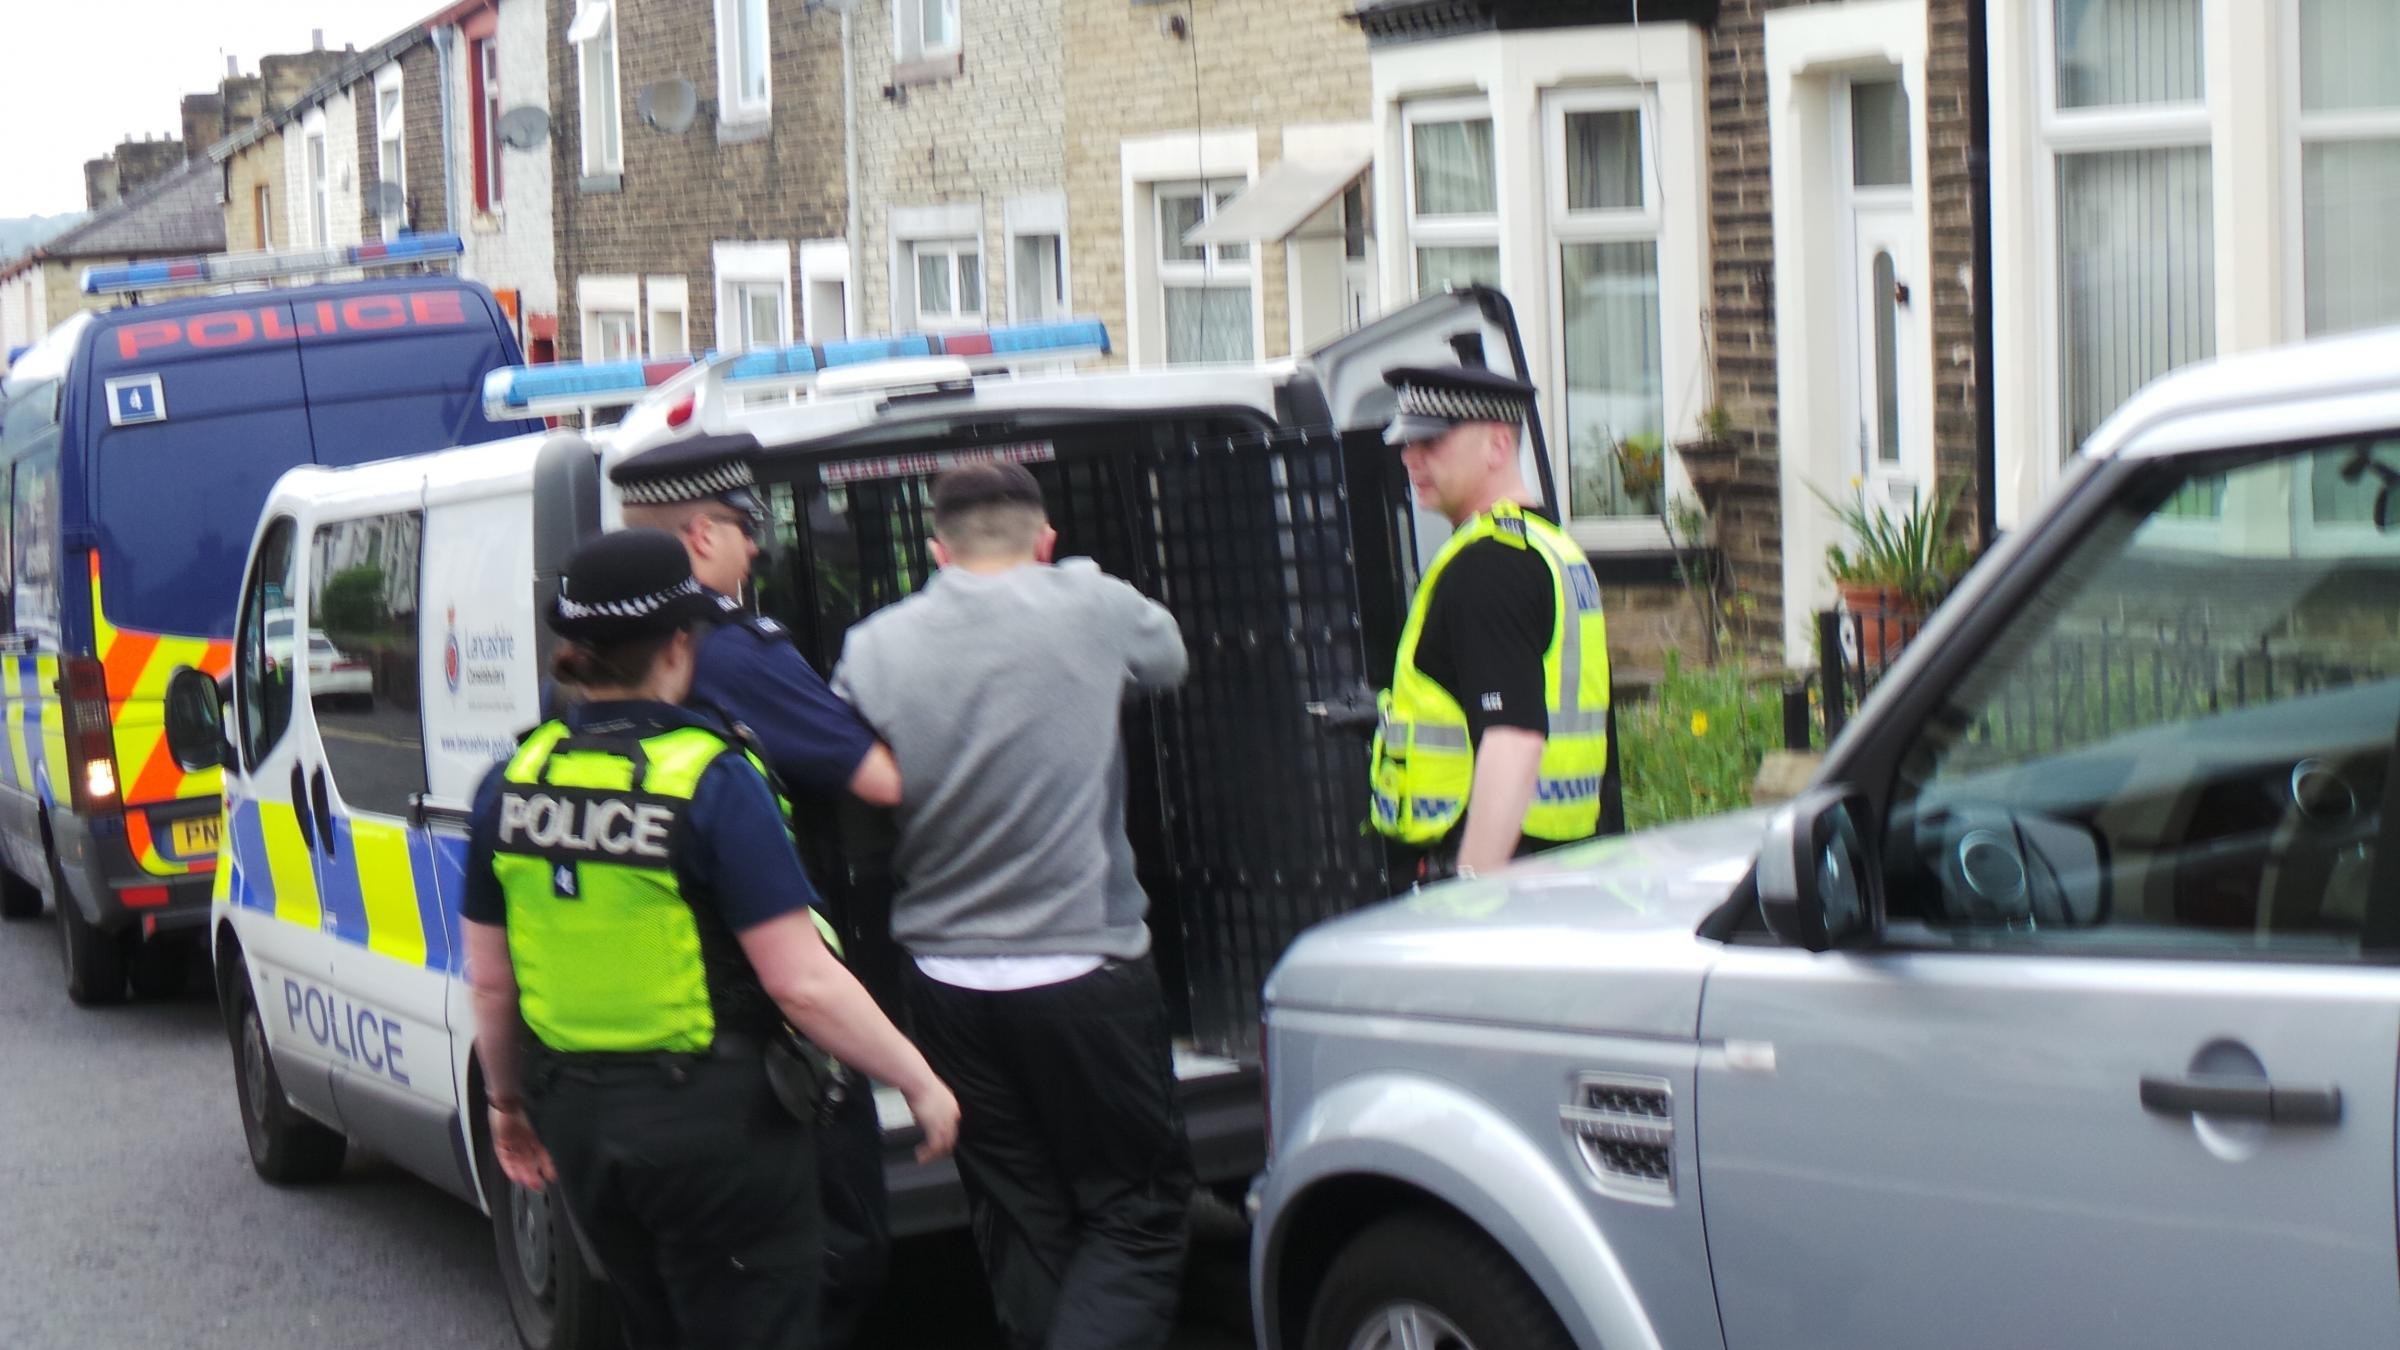 Seven arrested in early morning East Lancs drugs raids